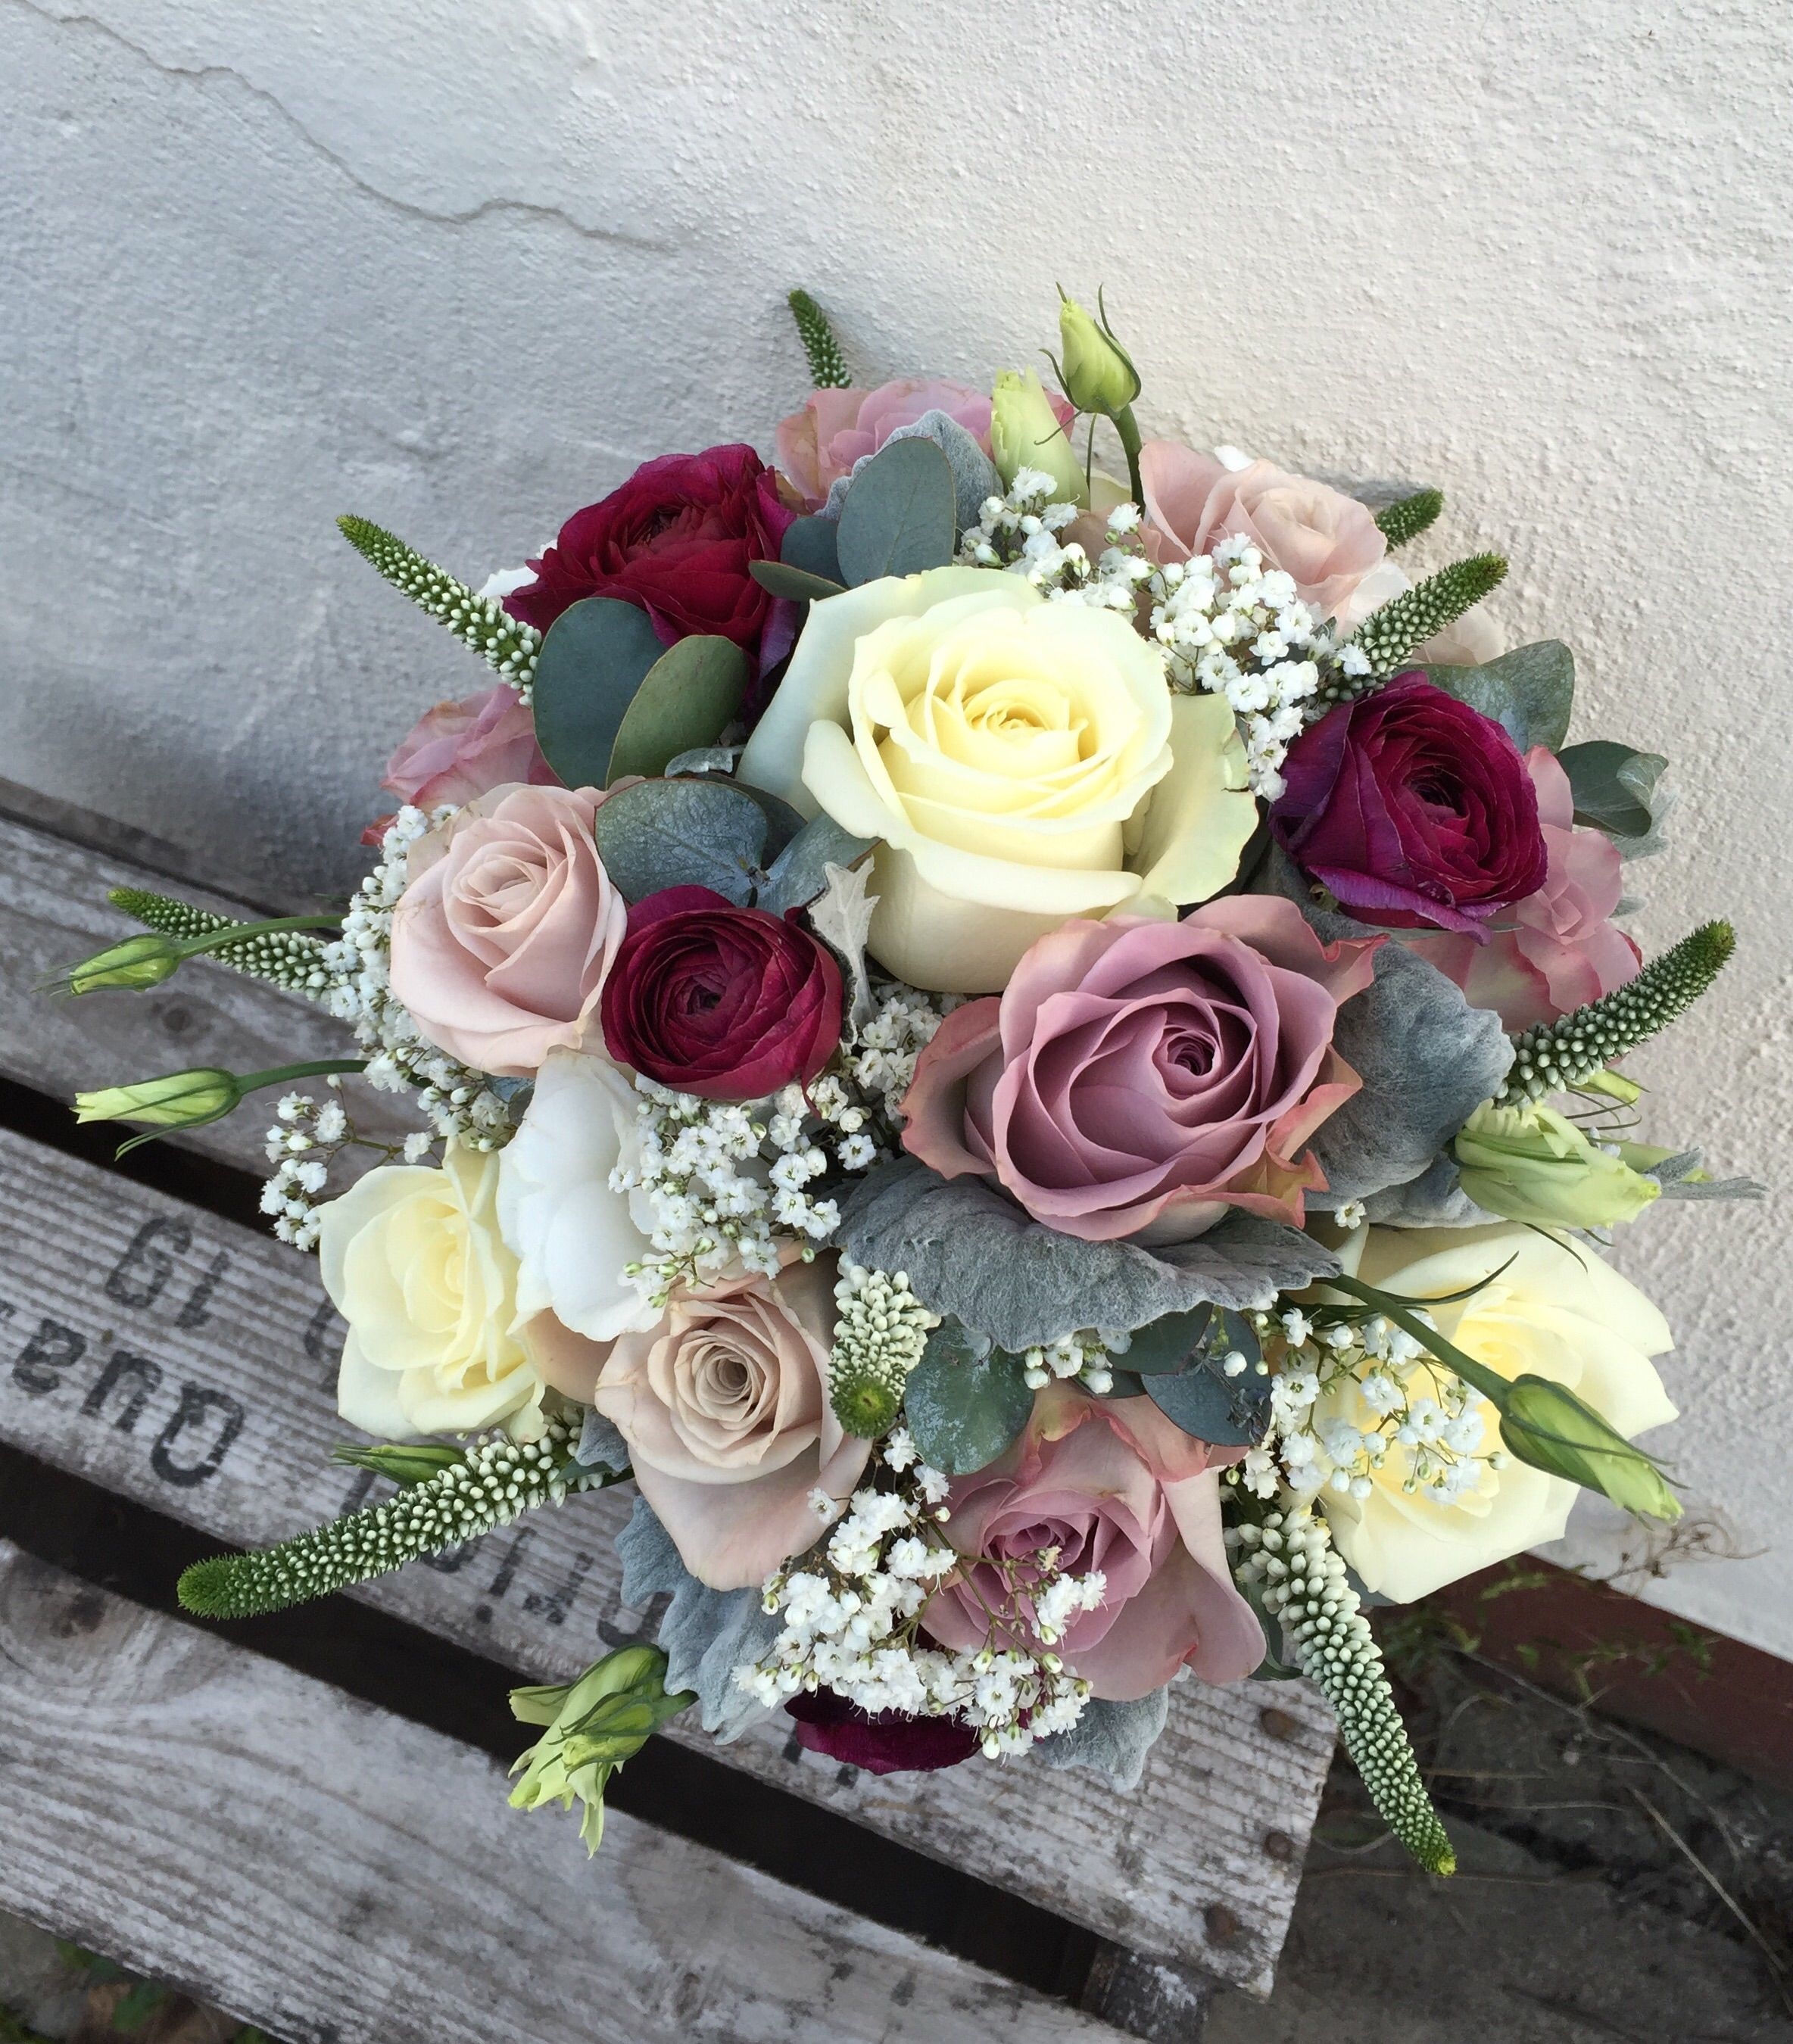 Fullsize Of Winter Wedding Flowers